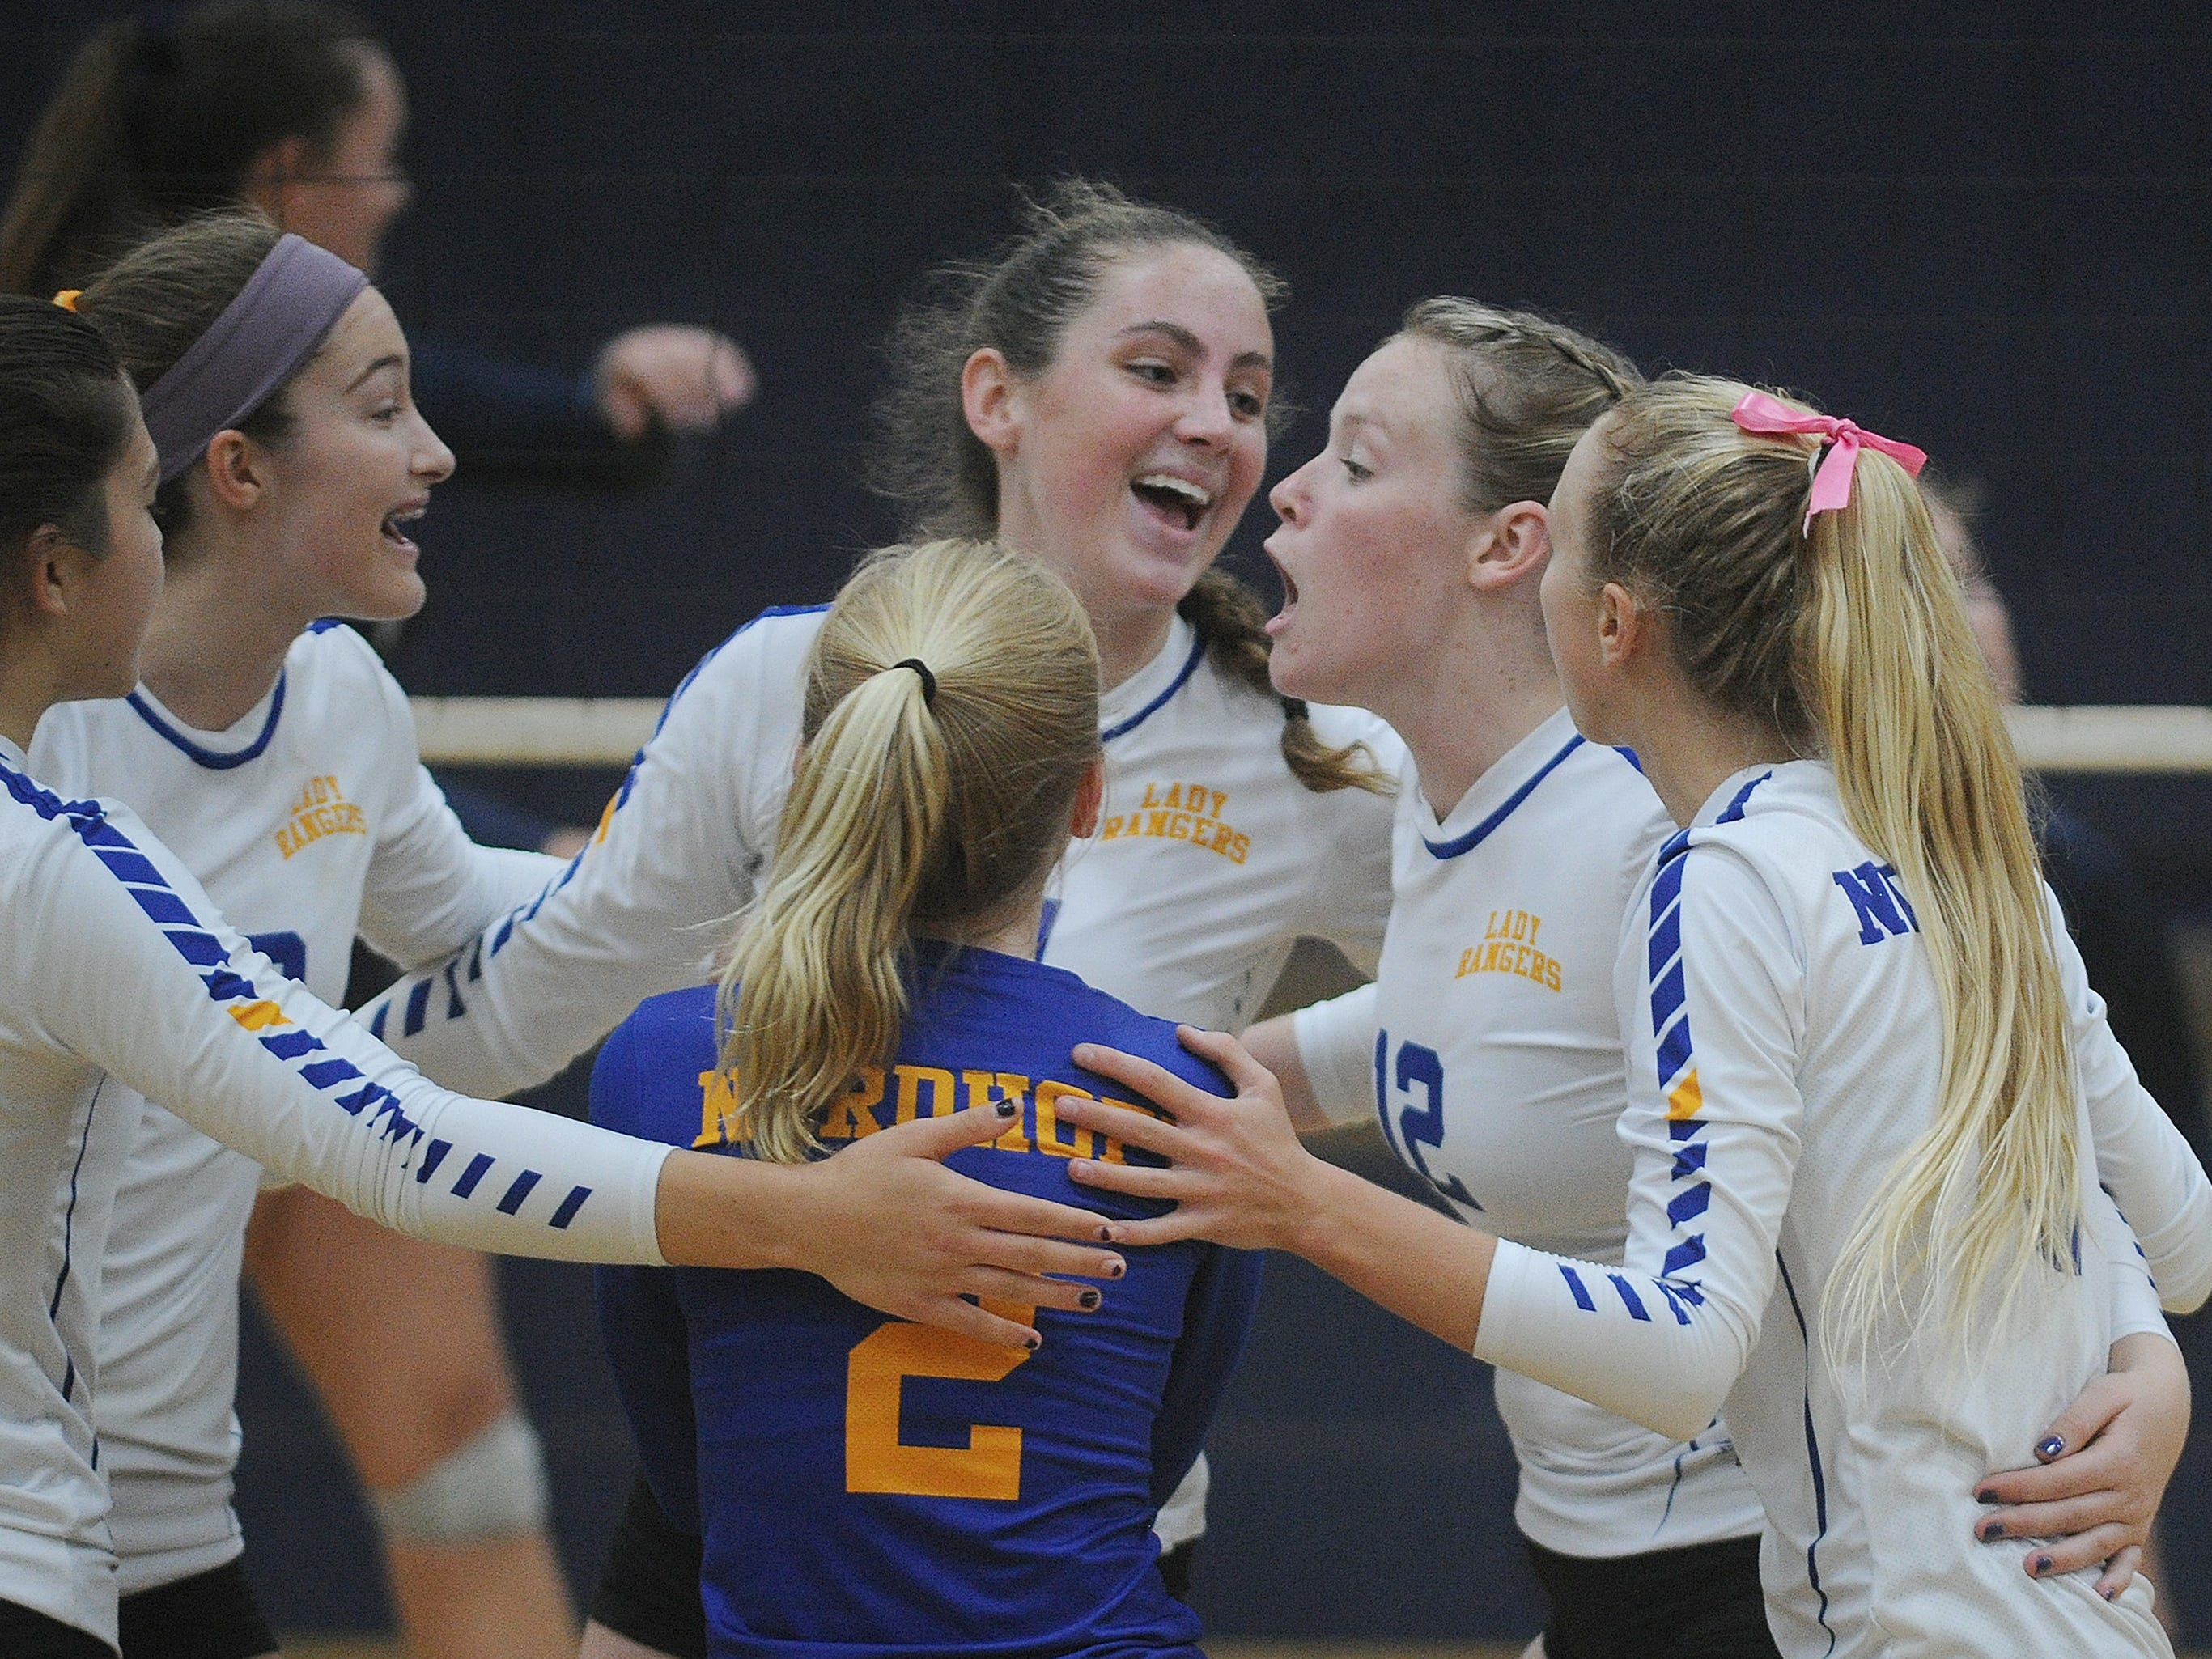 Nordhoff High players celebrate a point against Linfield Christian during the CIF-SS Division 7 girls volleyball final Saturday.